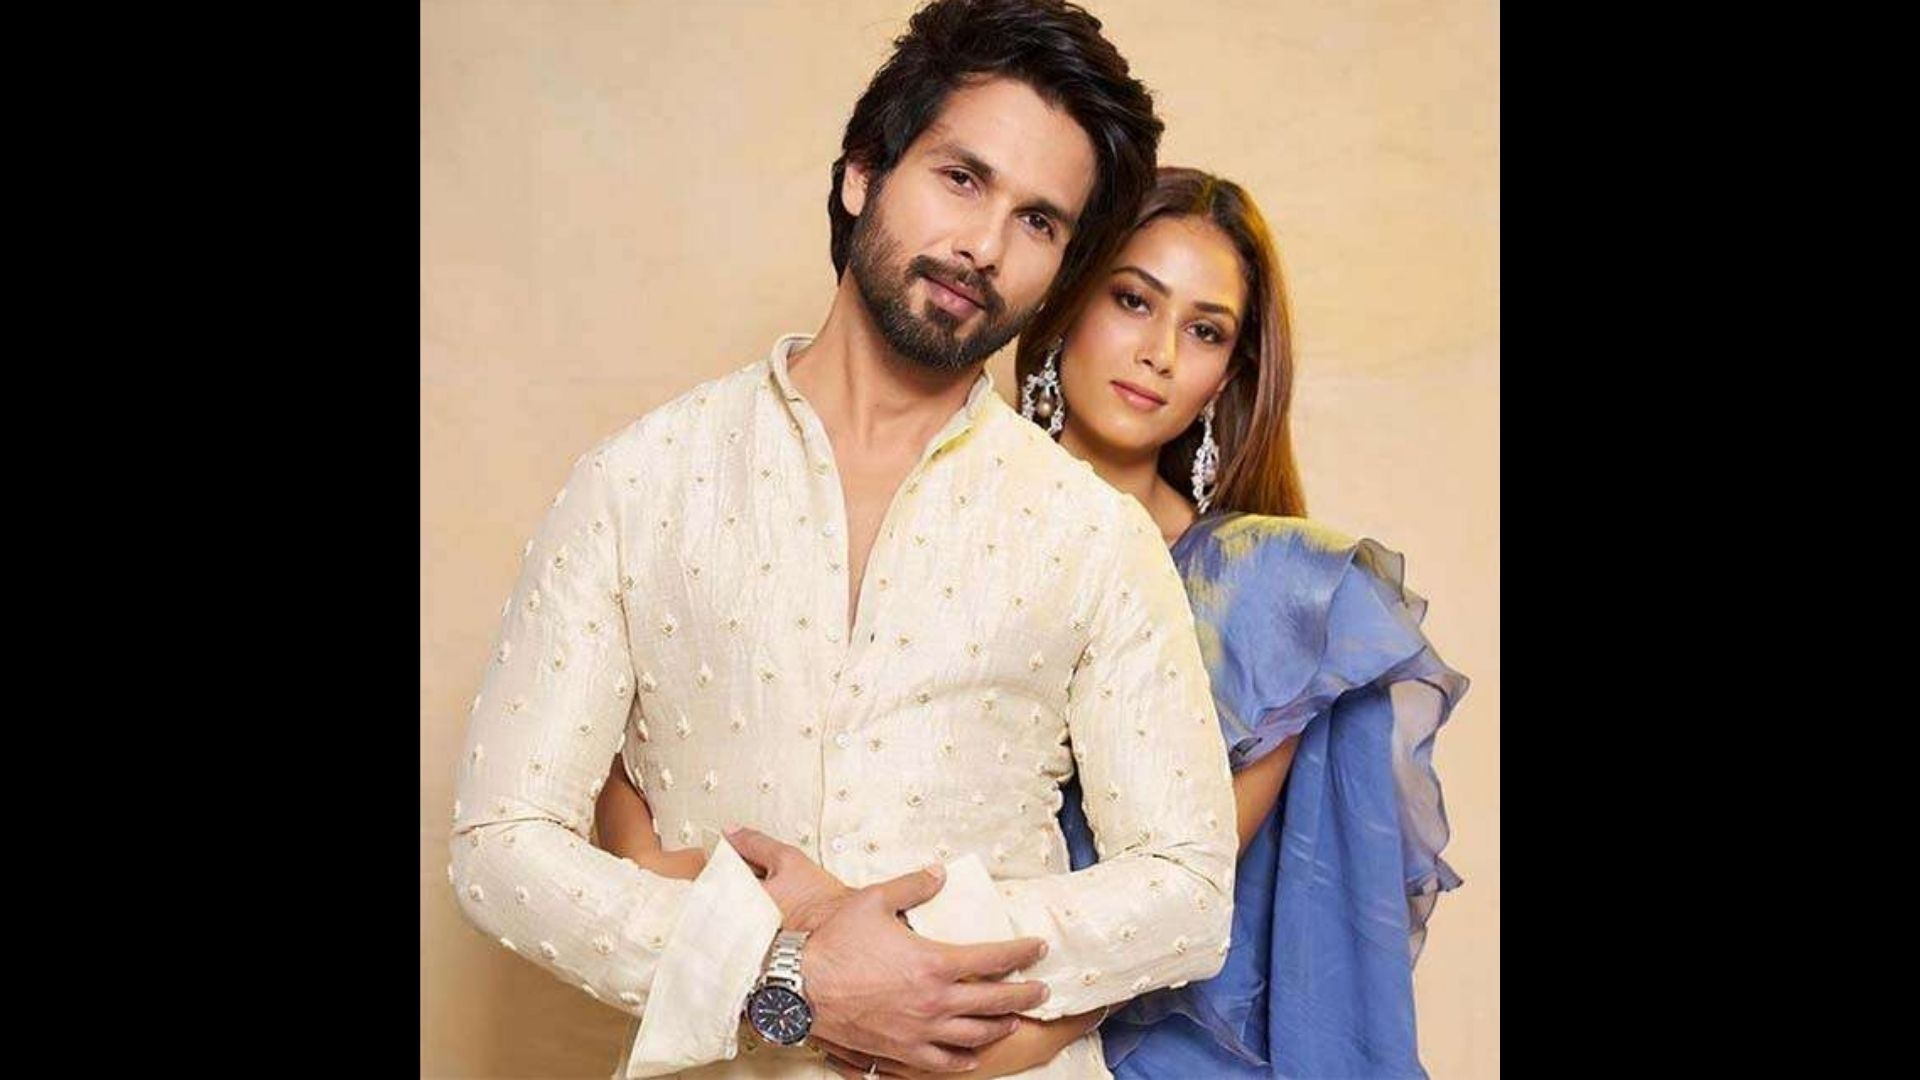 When Shahid Kapoor's Wife Mira Rajput Revealed A Steamy Bedroom Secret About Her Husband